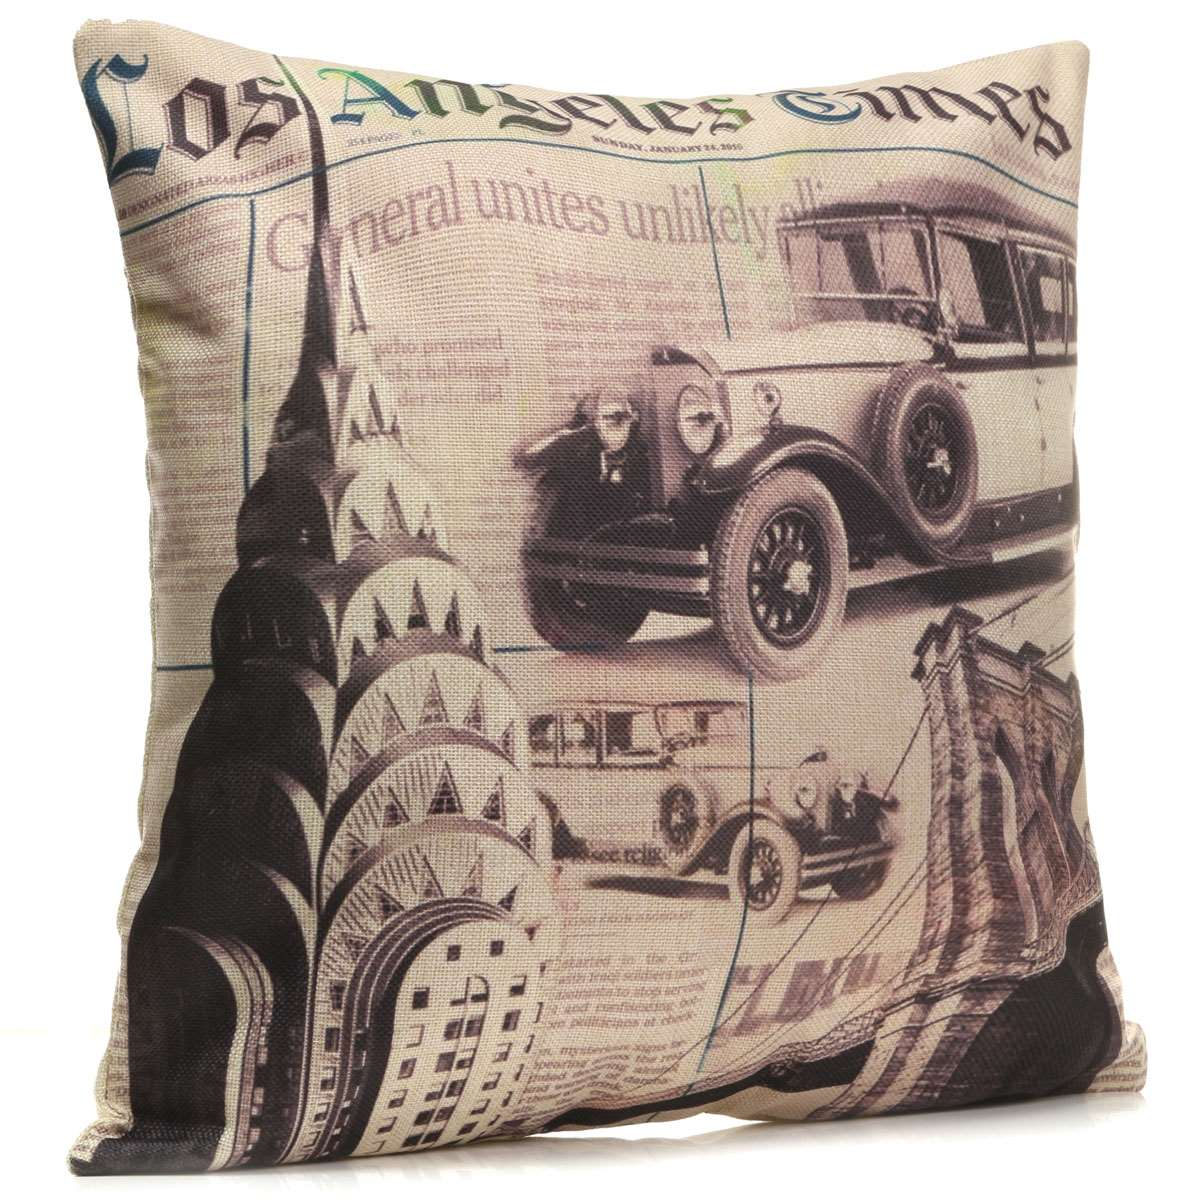 43X43cm Cotton Linen Throw Pillow Cover Vintage Vehicle Los Angeles Times Pillow Case Home Hotel Supplie Soft Pillowcase Square(China (Mainland))